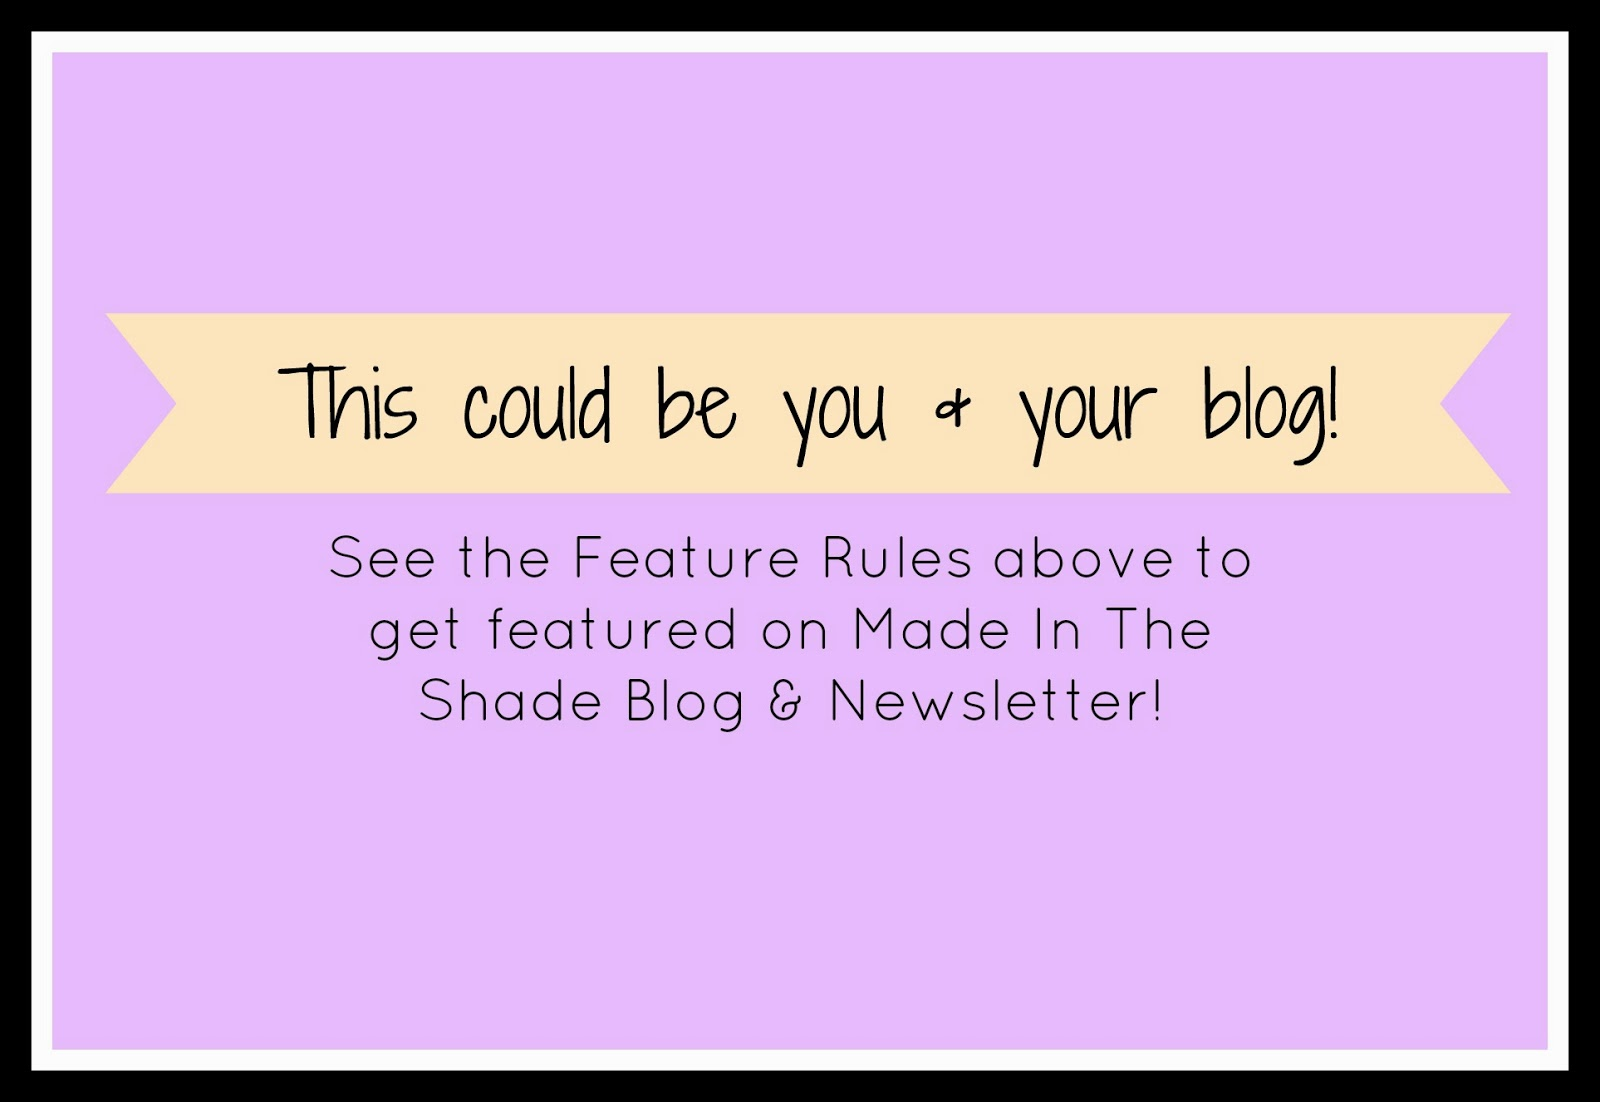 Have your blog featured on Made In The Shade Blog!